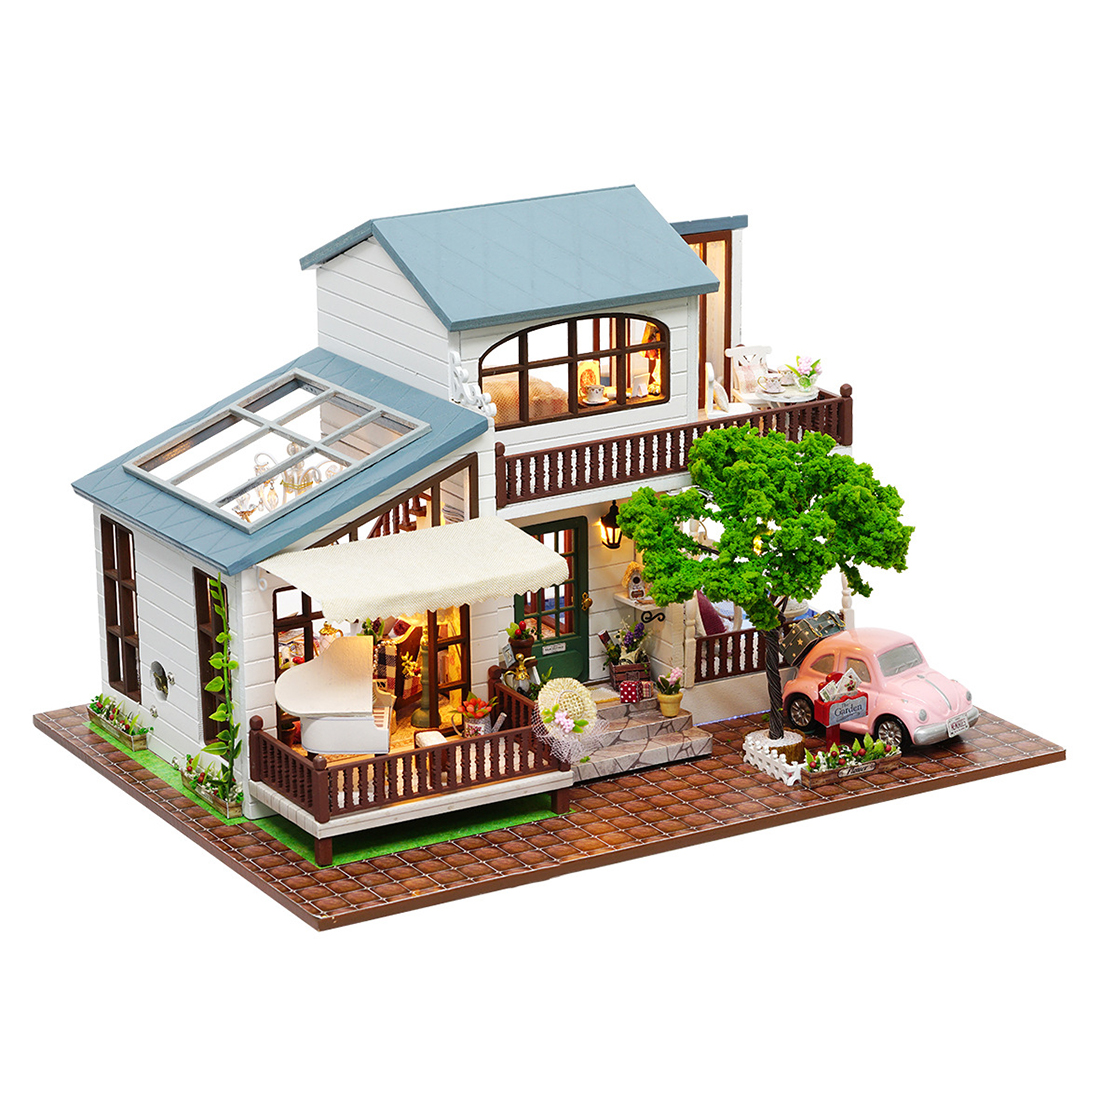 Wooden Diy Dollhouse Toy Miniature Box Puzzle Dollhouse Diy Kit Doll House Furniture London Holiday Model Gift Toy For Children diy dollhouse